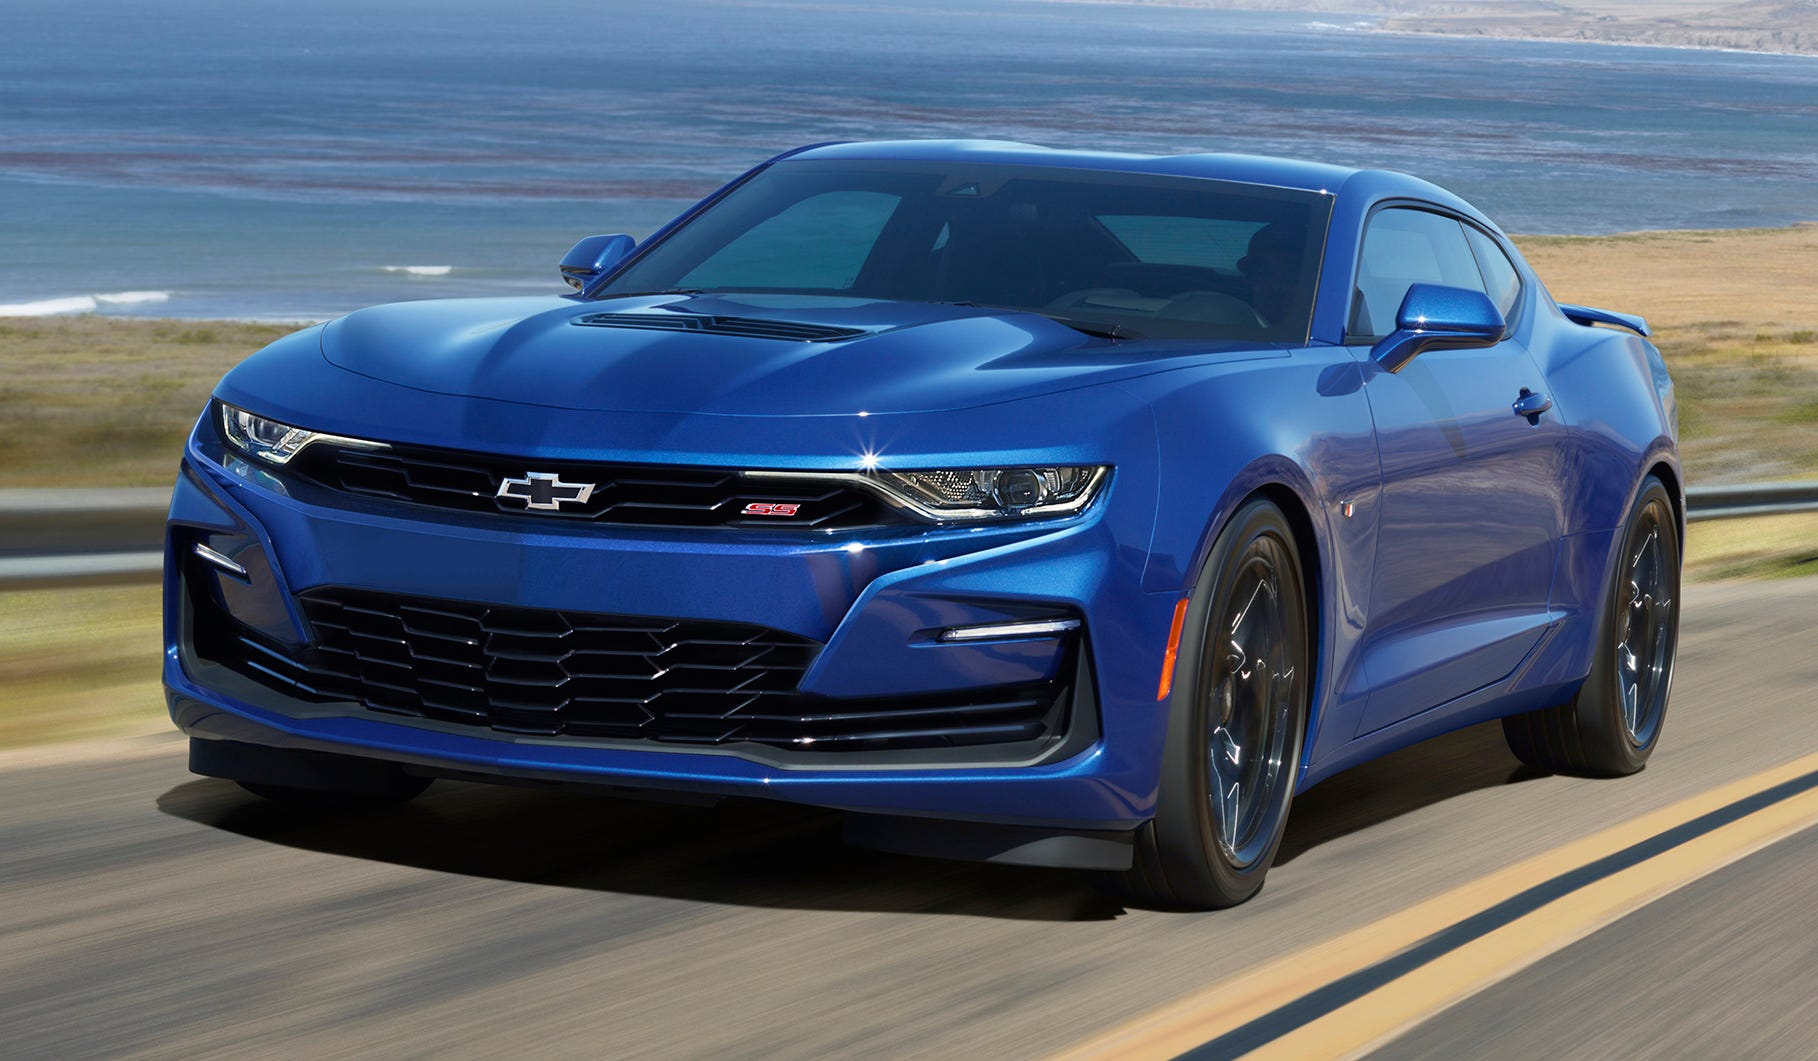 The 2020 Camaro SS, with its reworked front fascia, instantly received praise from motorhead magazines and Camaro forums alike.